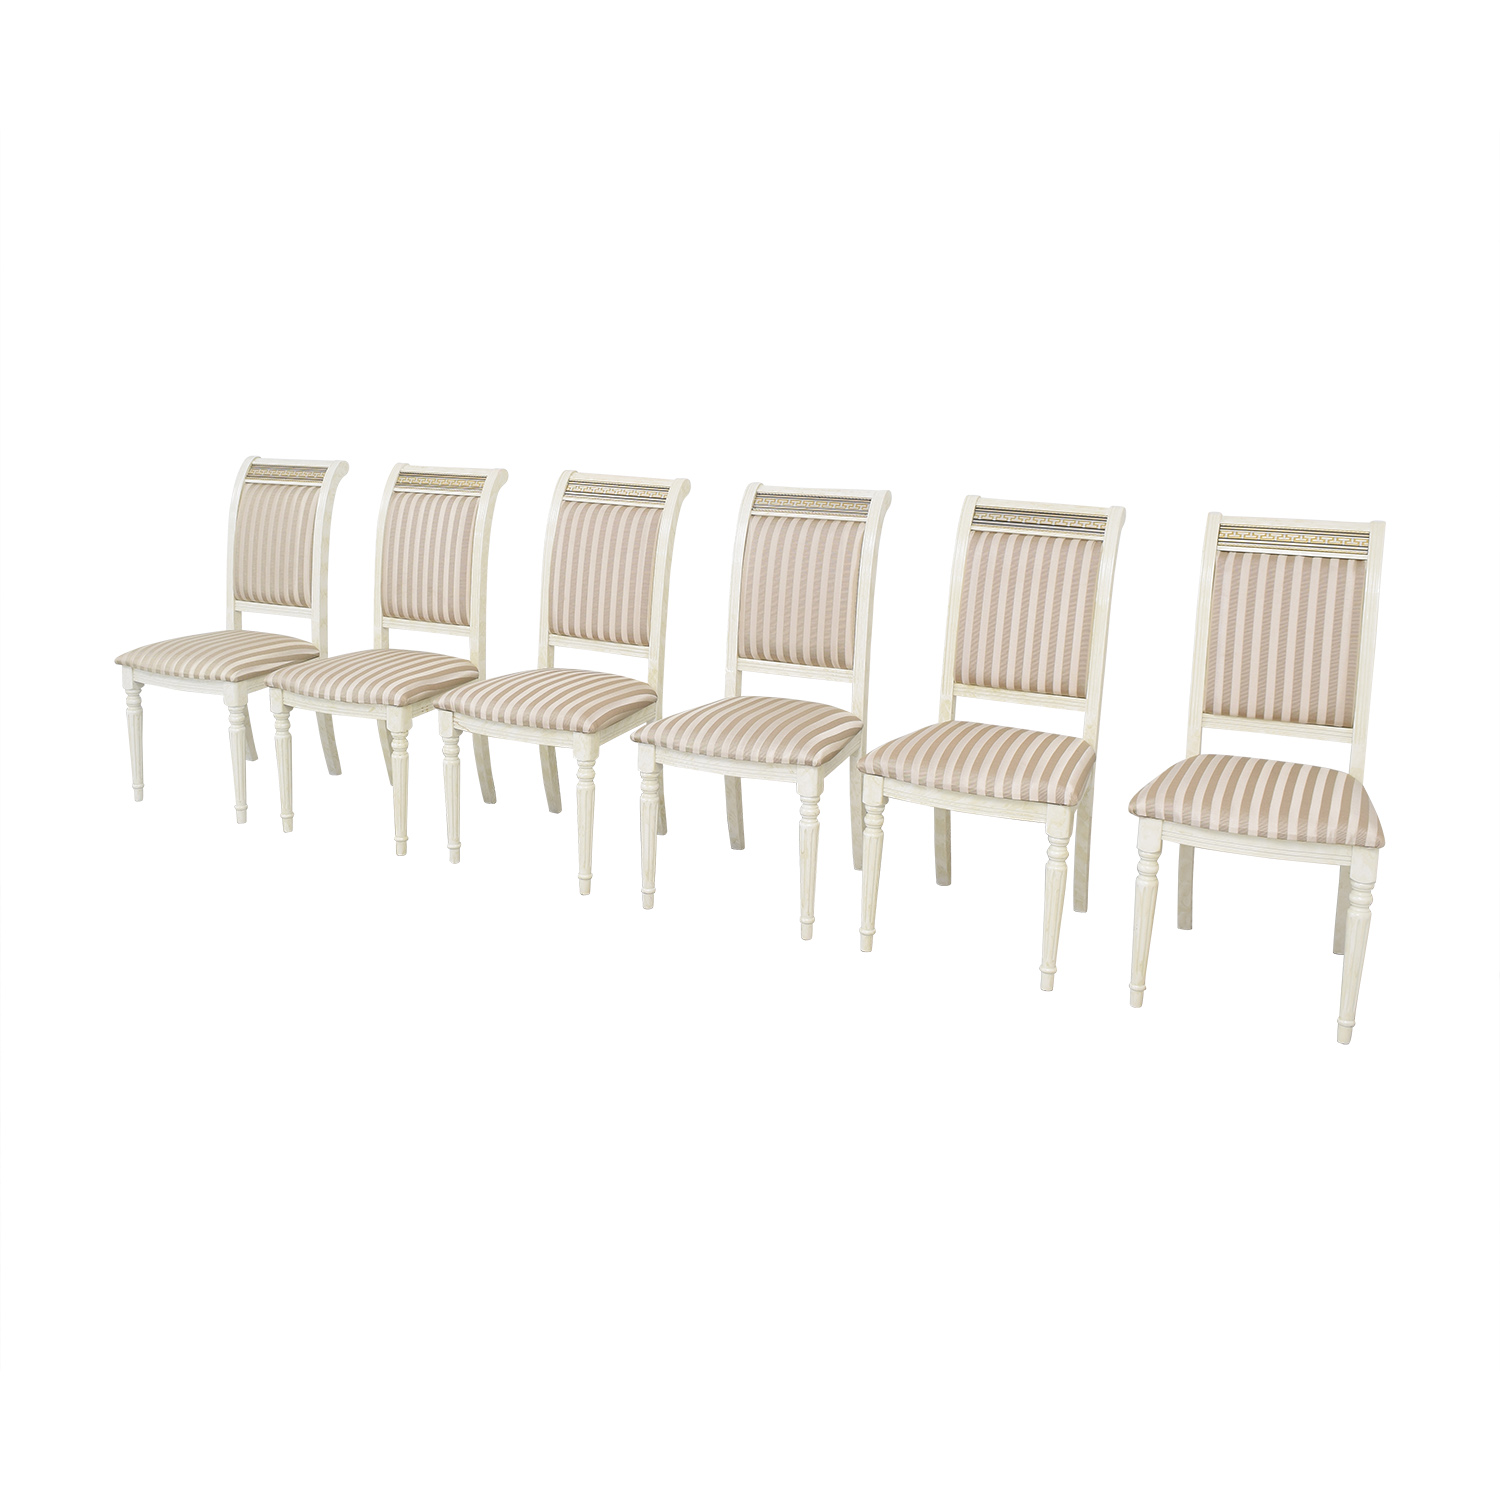 Arredoclassic Arredoclassic Italy Dining Chairs on sale